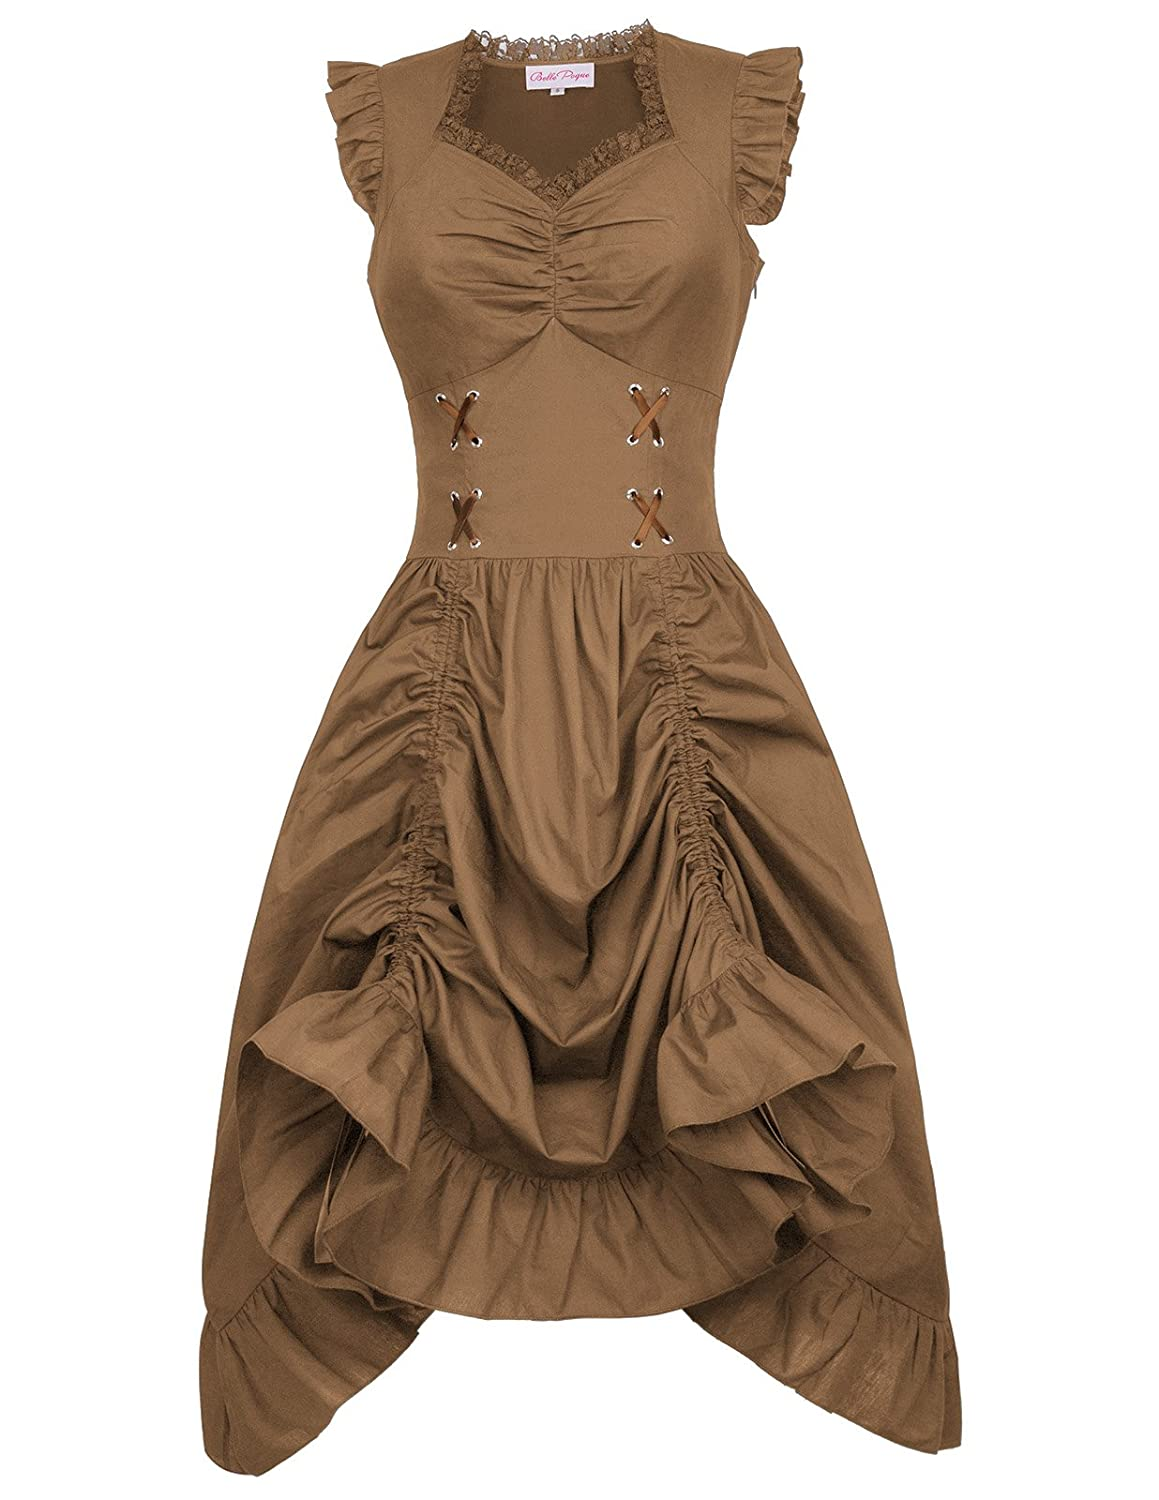 Steampunk Dresses | Women & Girl Costumes Belle Poque Steampunk Gothic Victorian Ruffled Dress Sleeveless $35.99 AT vintagedancer.com